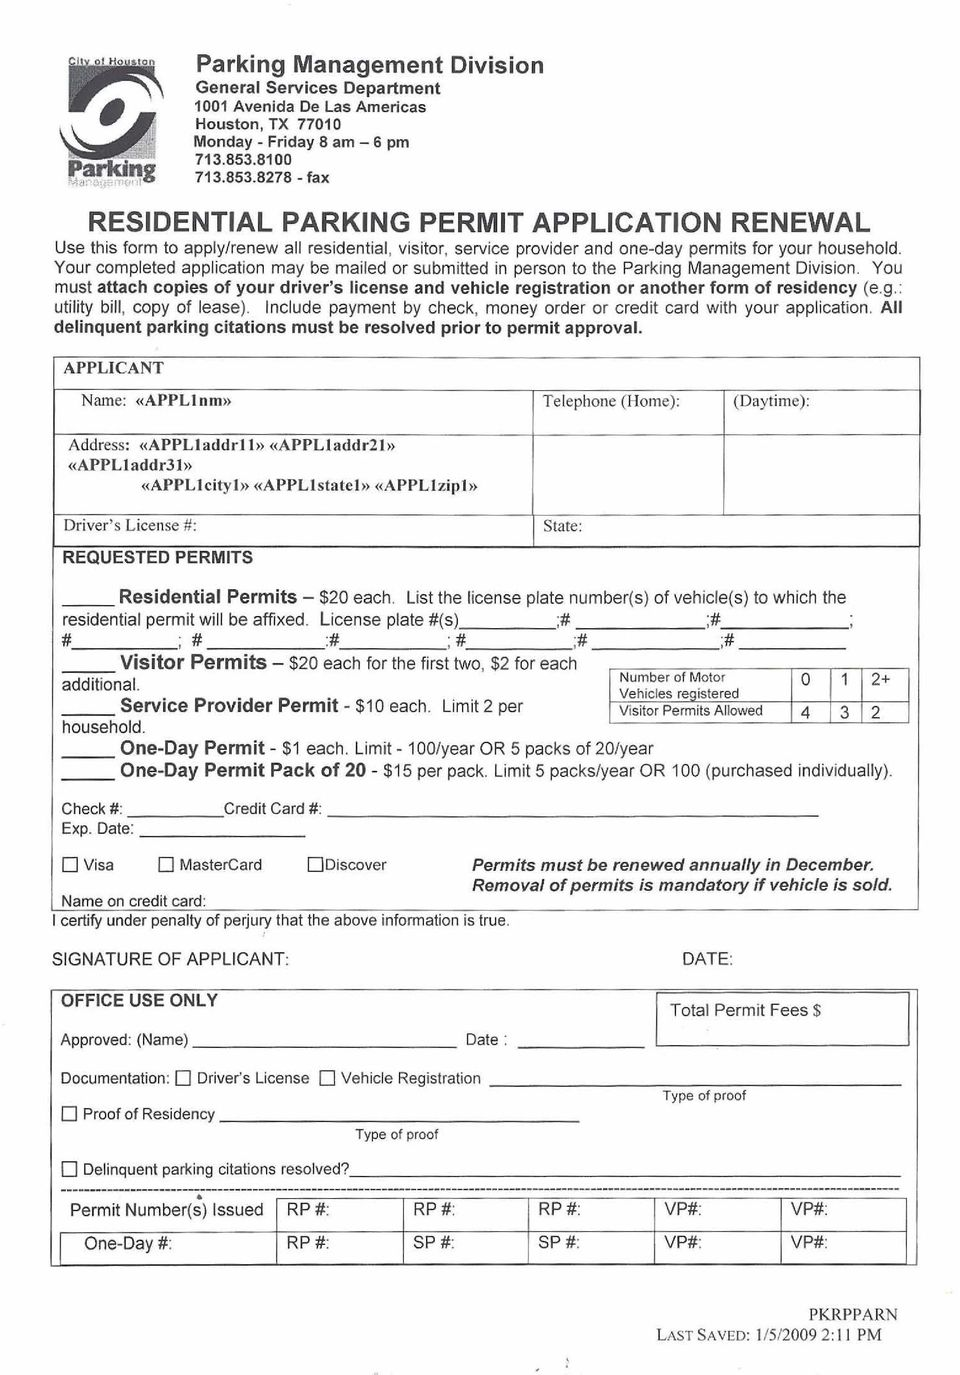 Your completed application may be mailed or submitted in person to the Parking Management Division.